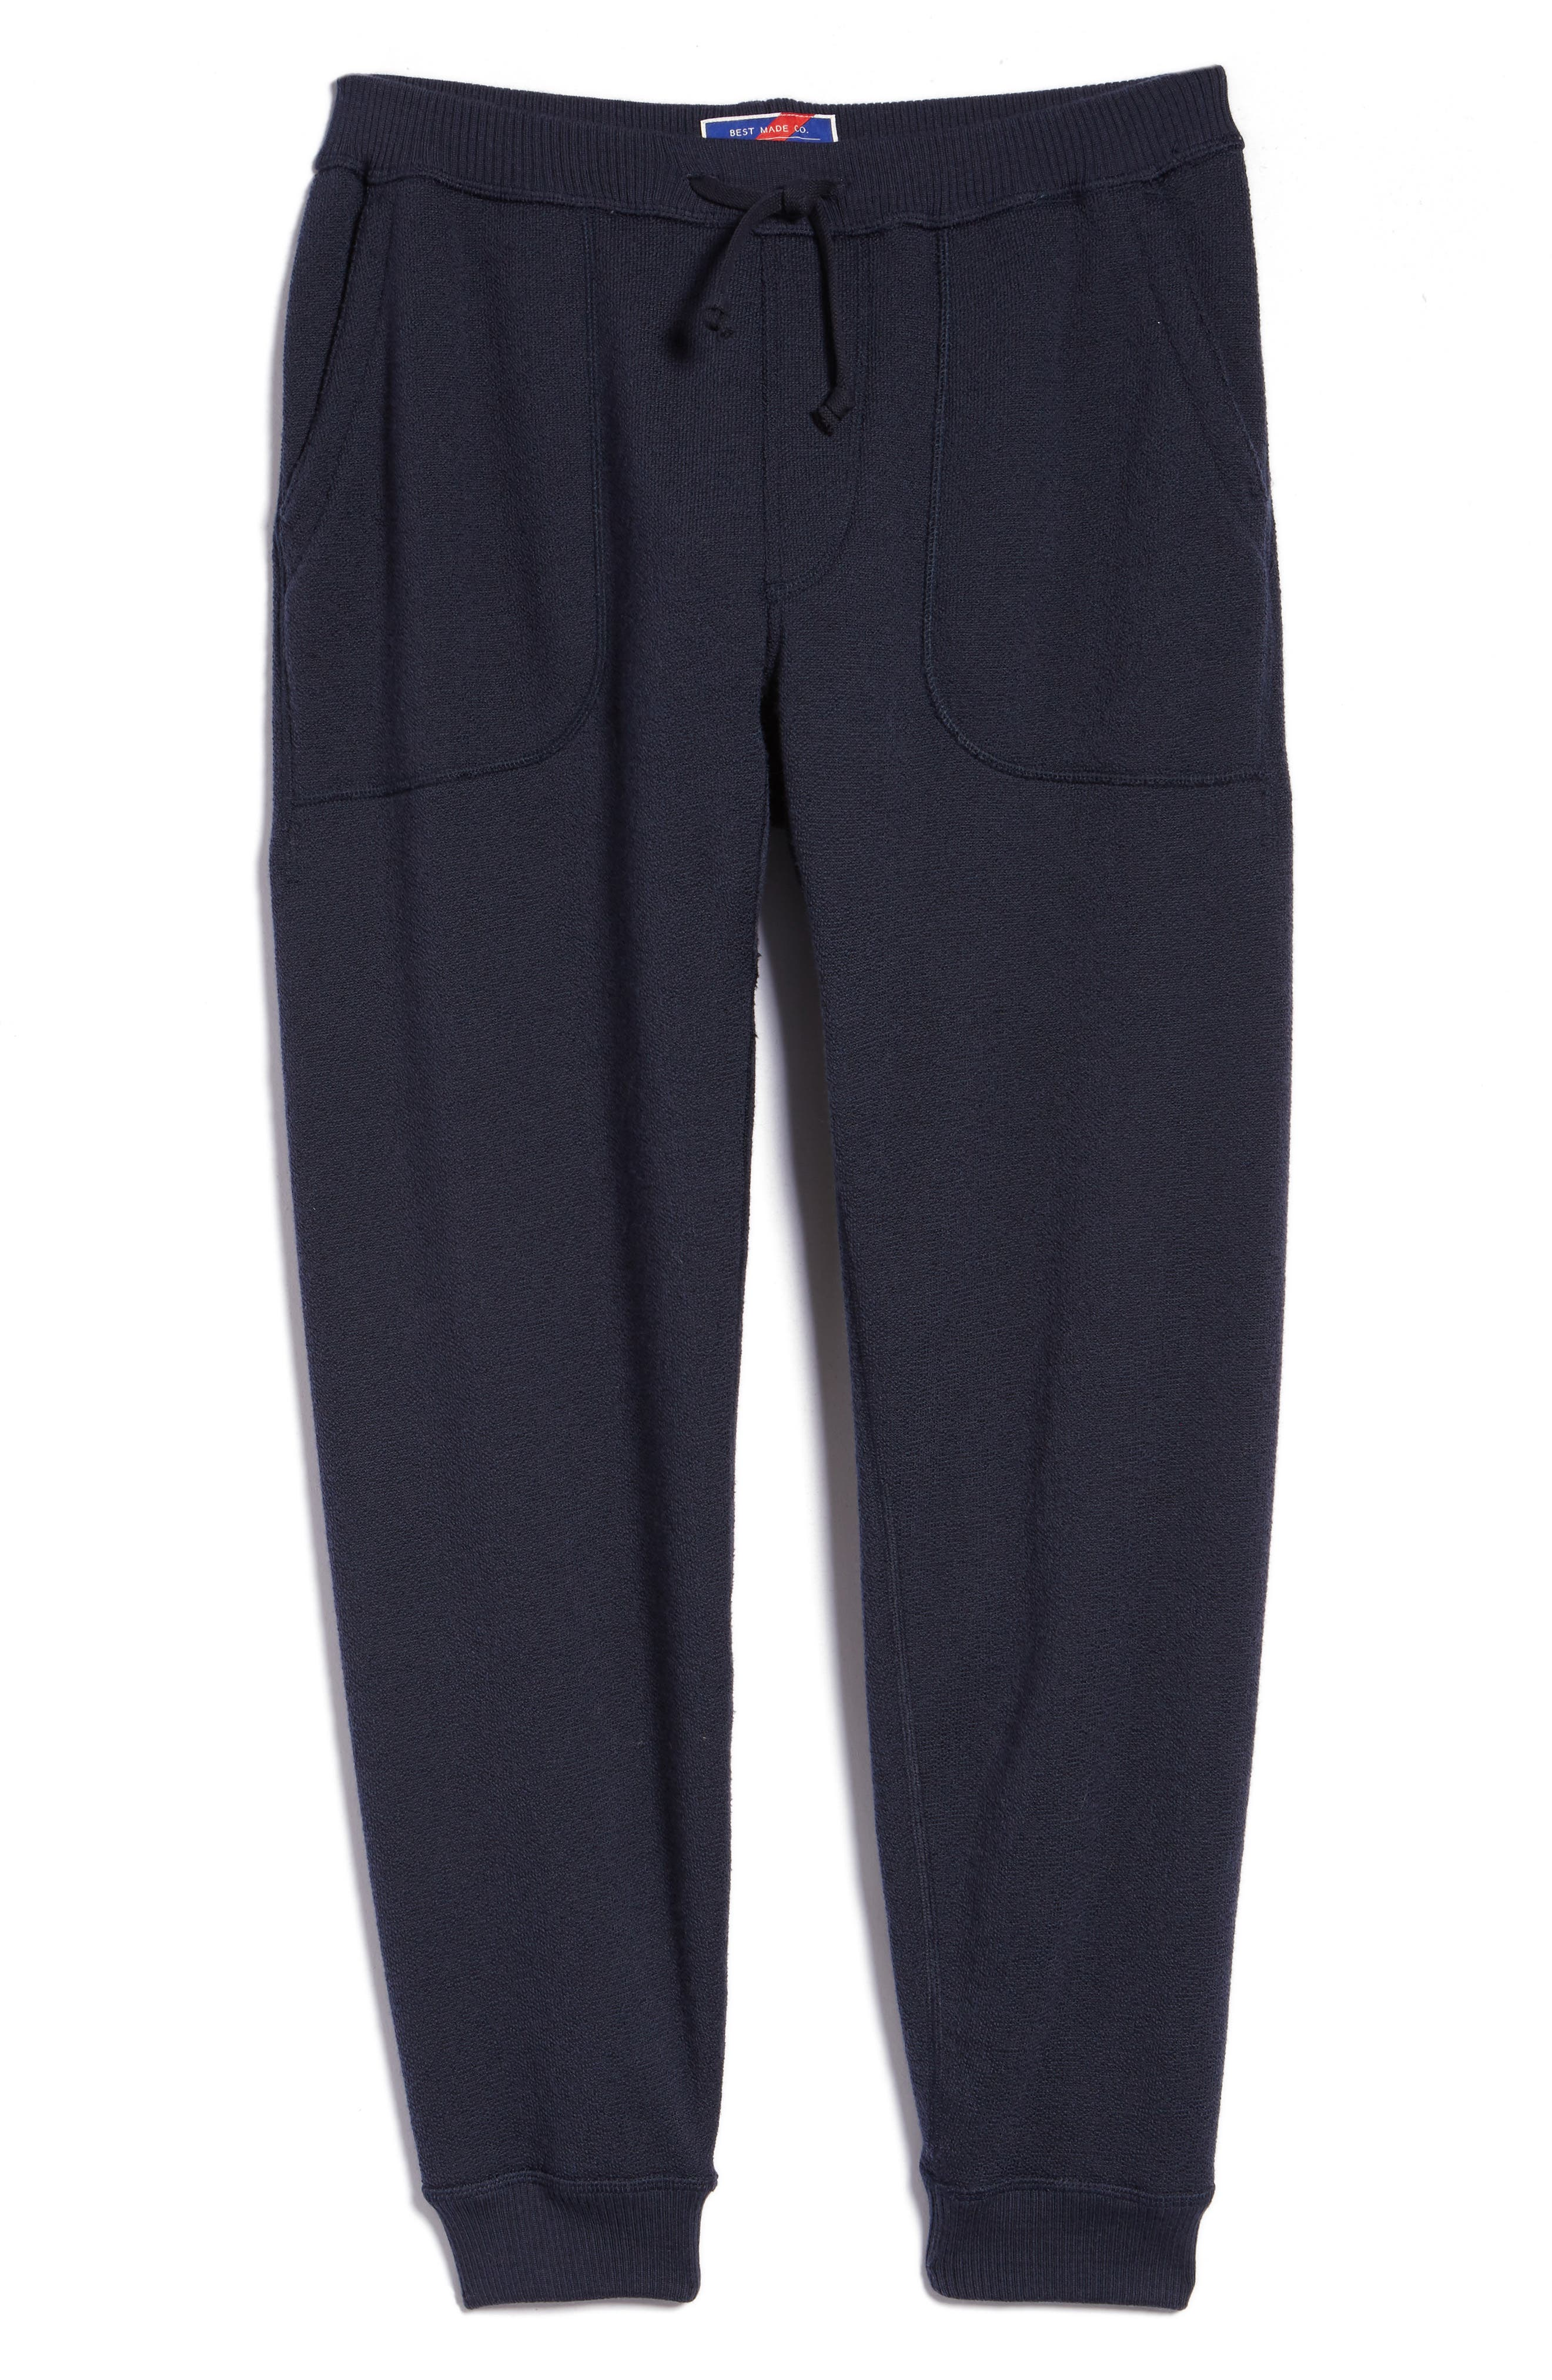 BEST MADE CO.,                             The Merino Wool Fleece Sweatpants,                             Main thumbnail 1, color,                             NAVY